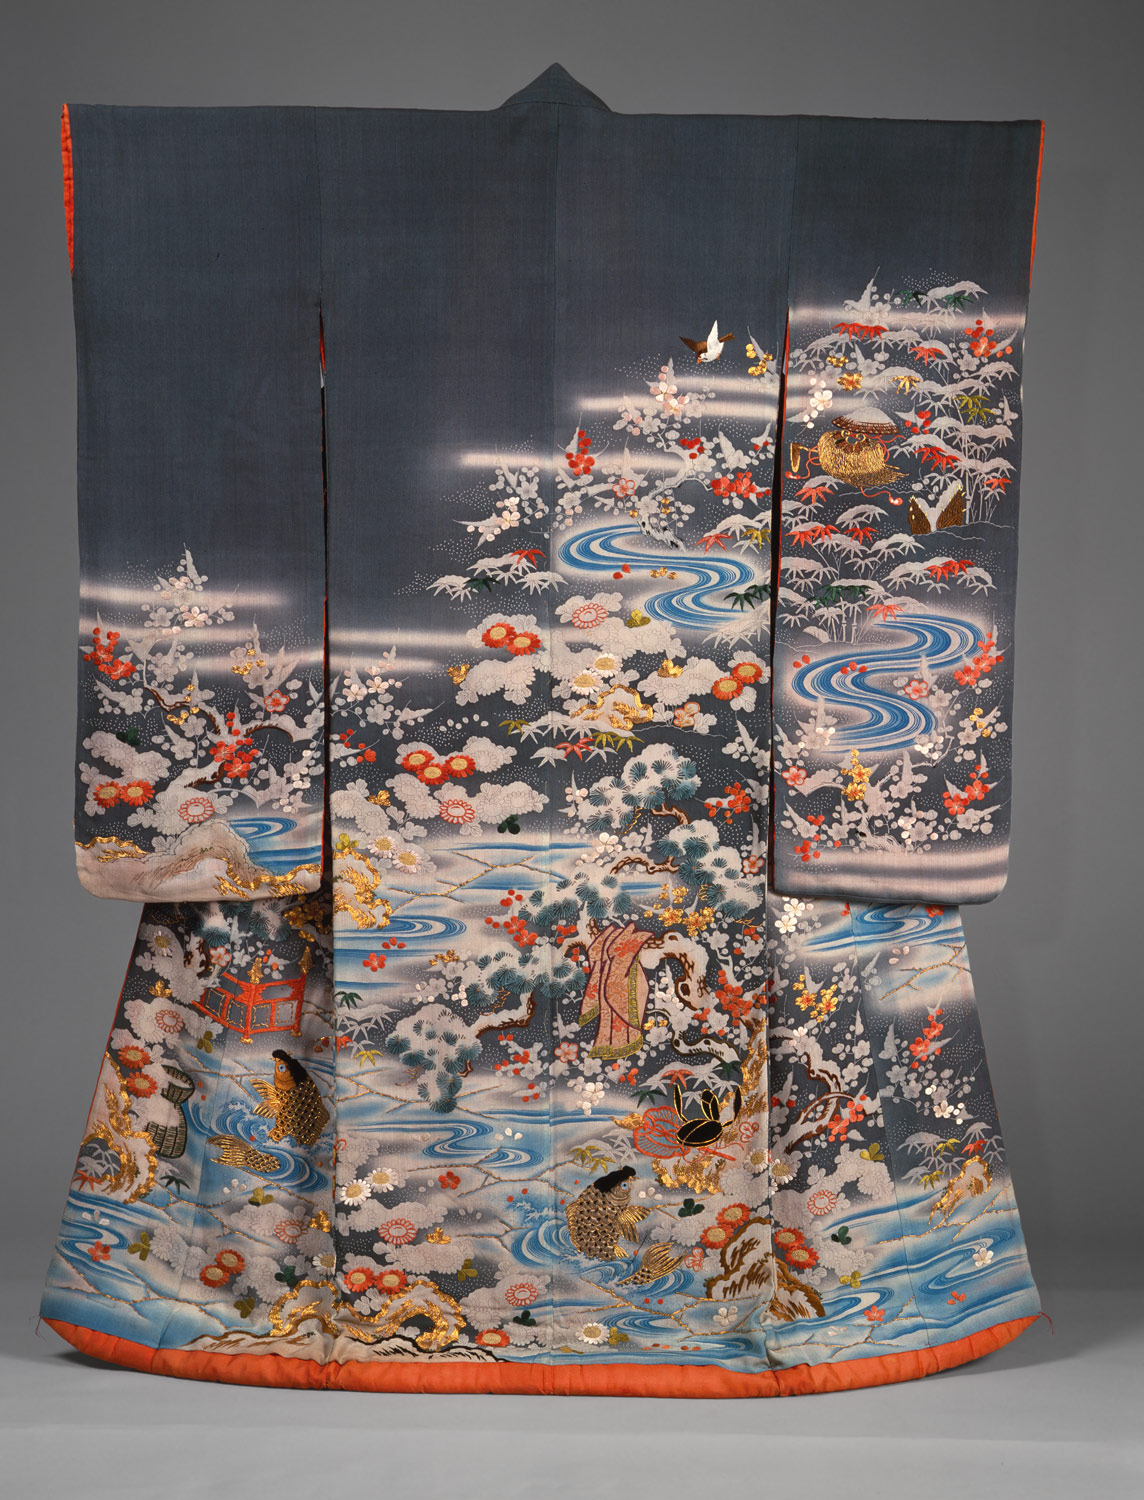 Outer Robe (Uchikake) with Scenes of Filial Piety